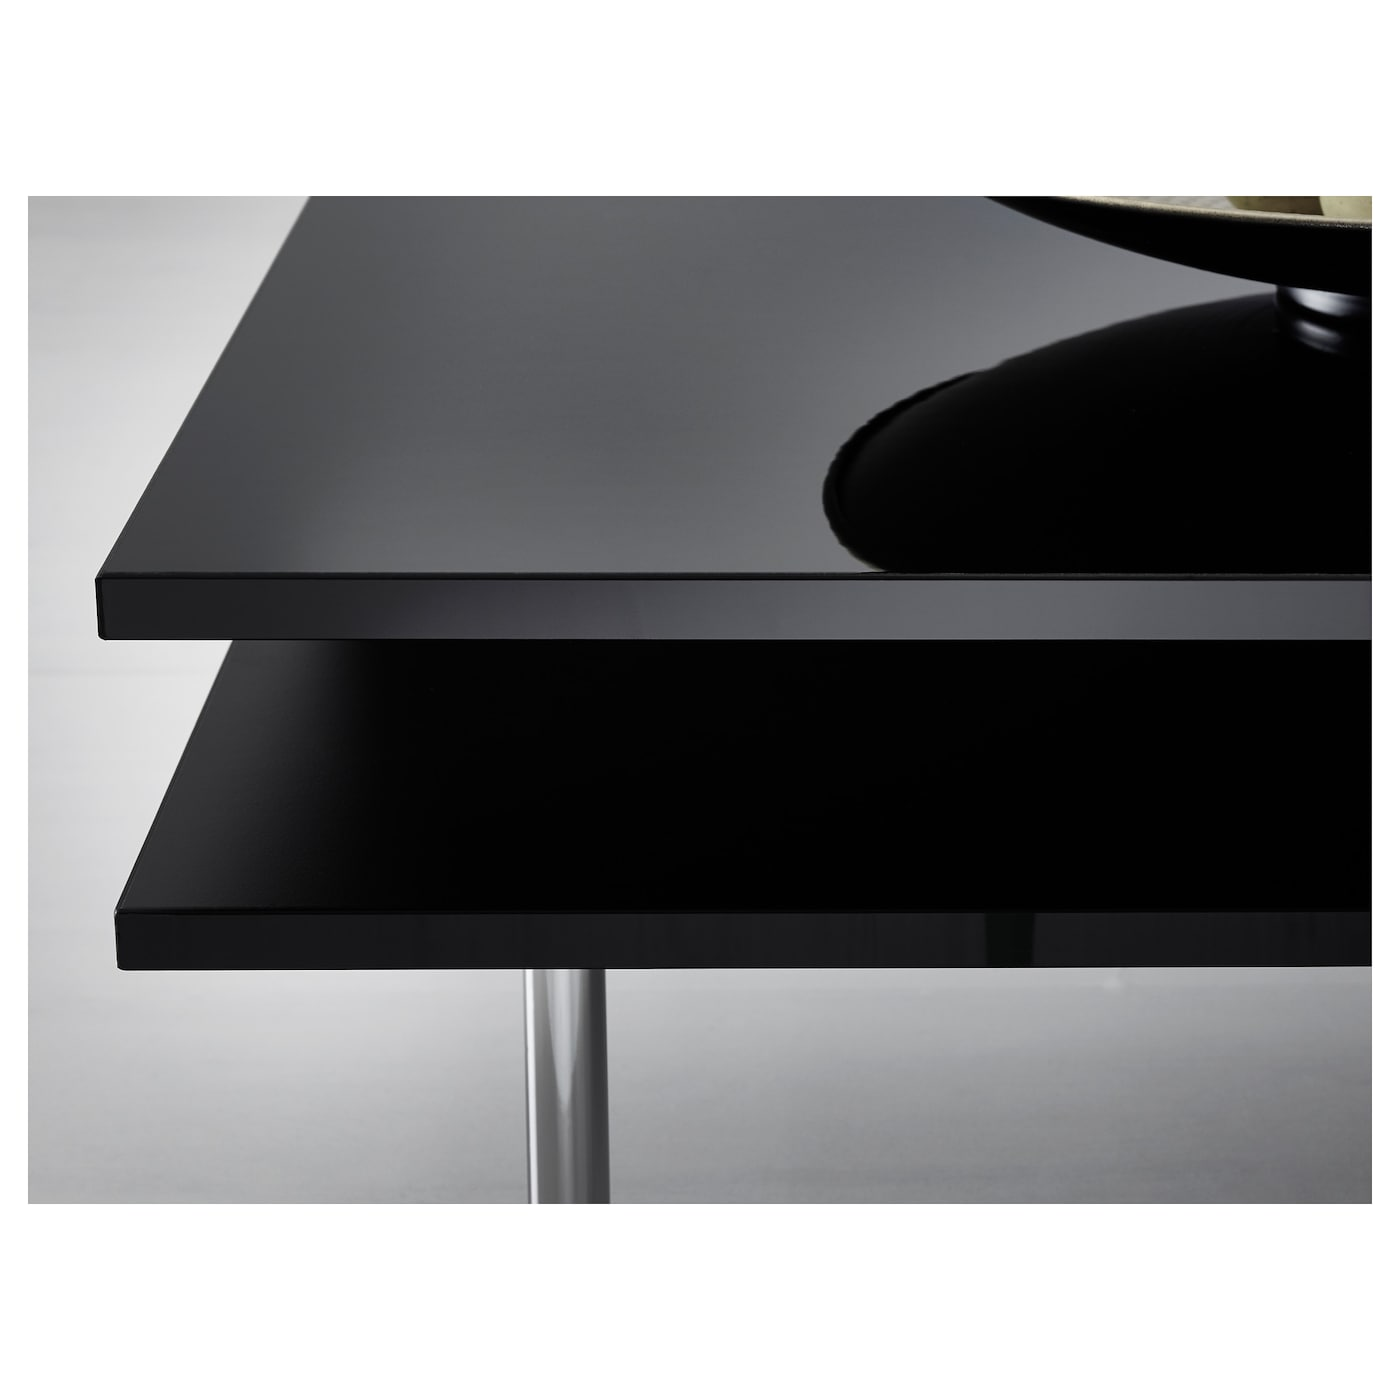 tofteryd table basse brillant noir 95 x 95 cm ikea. Black Bedroom Furniture Sets. Home Design Ideas